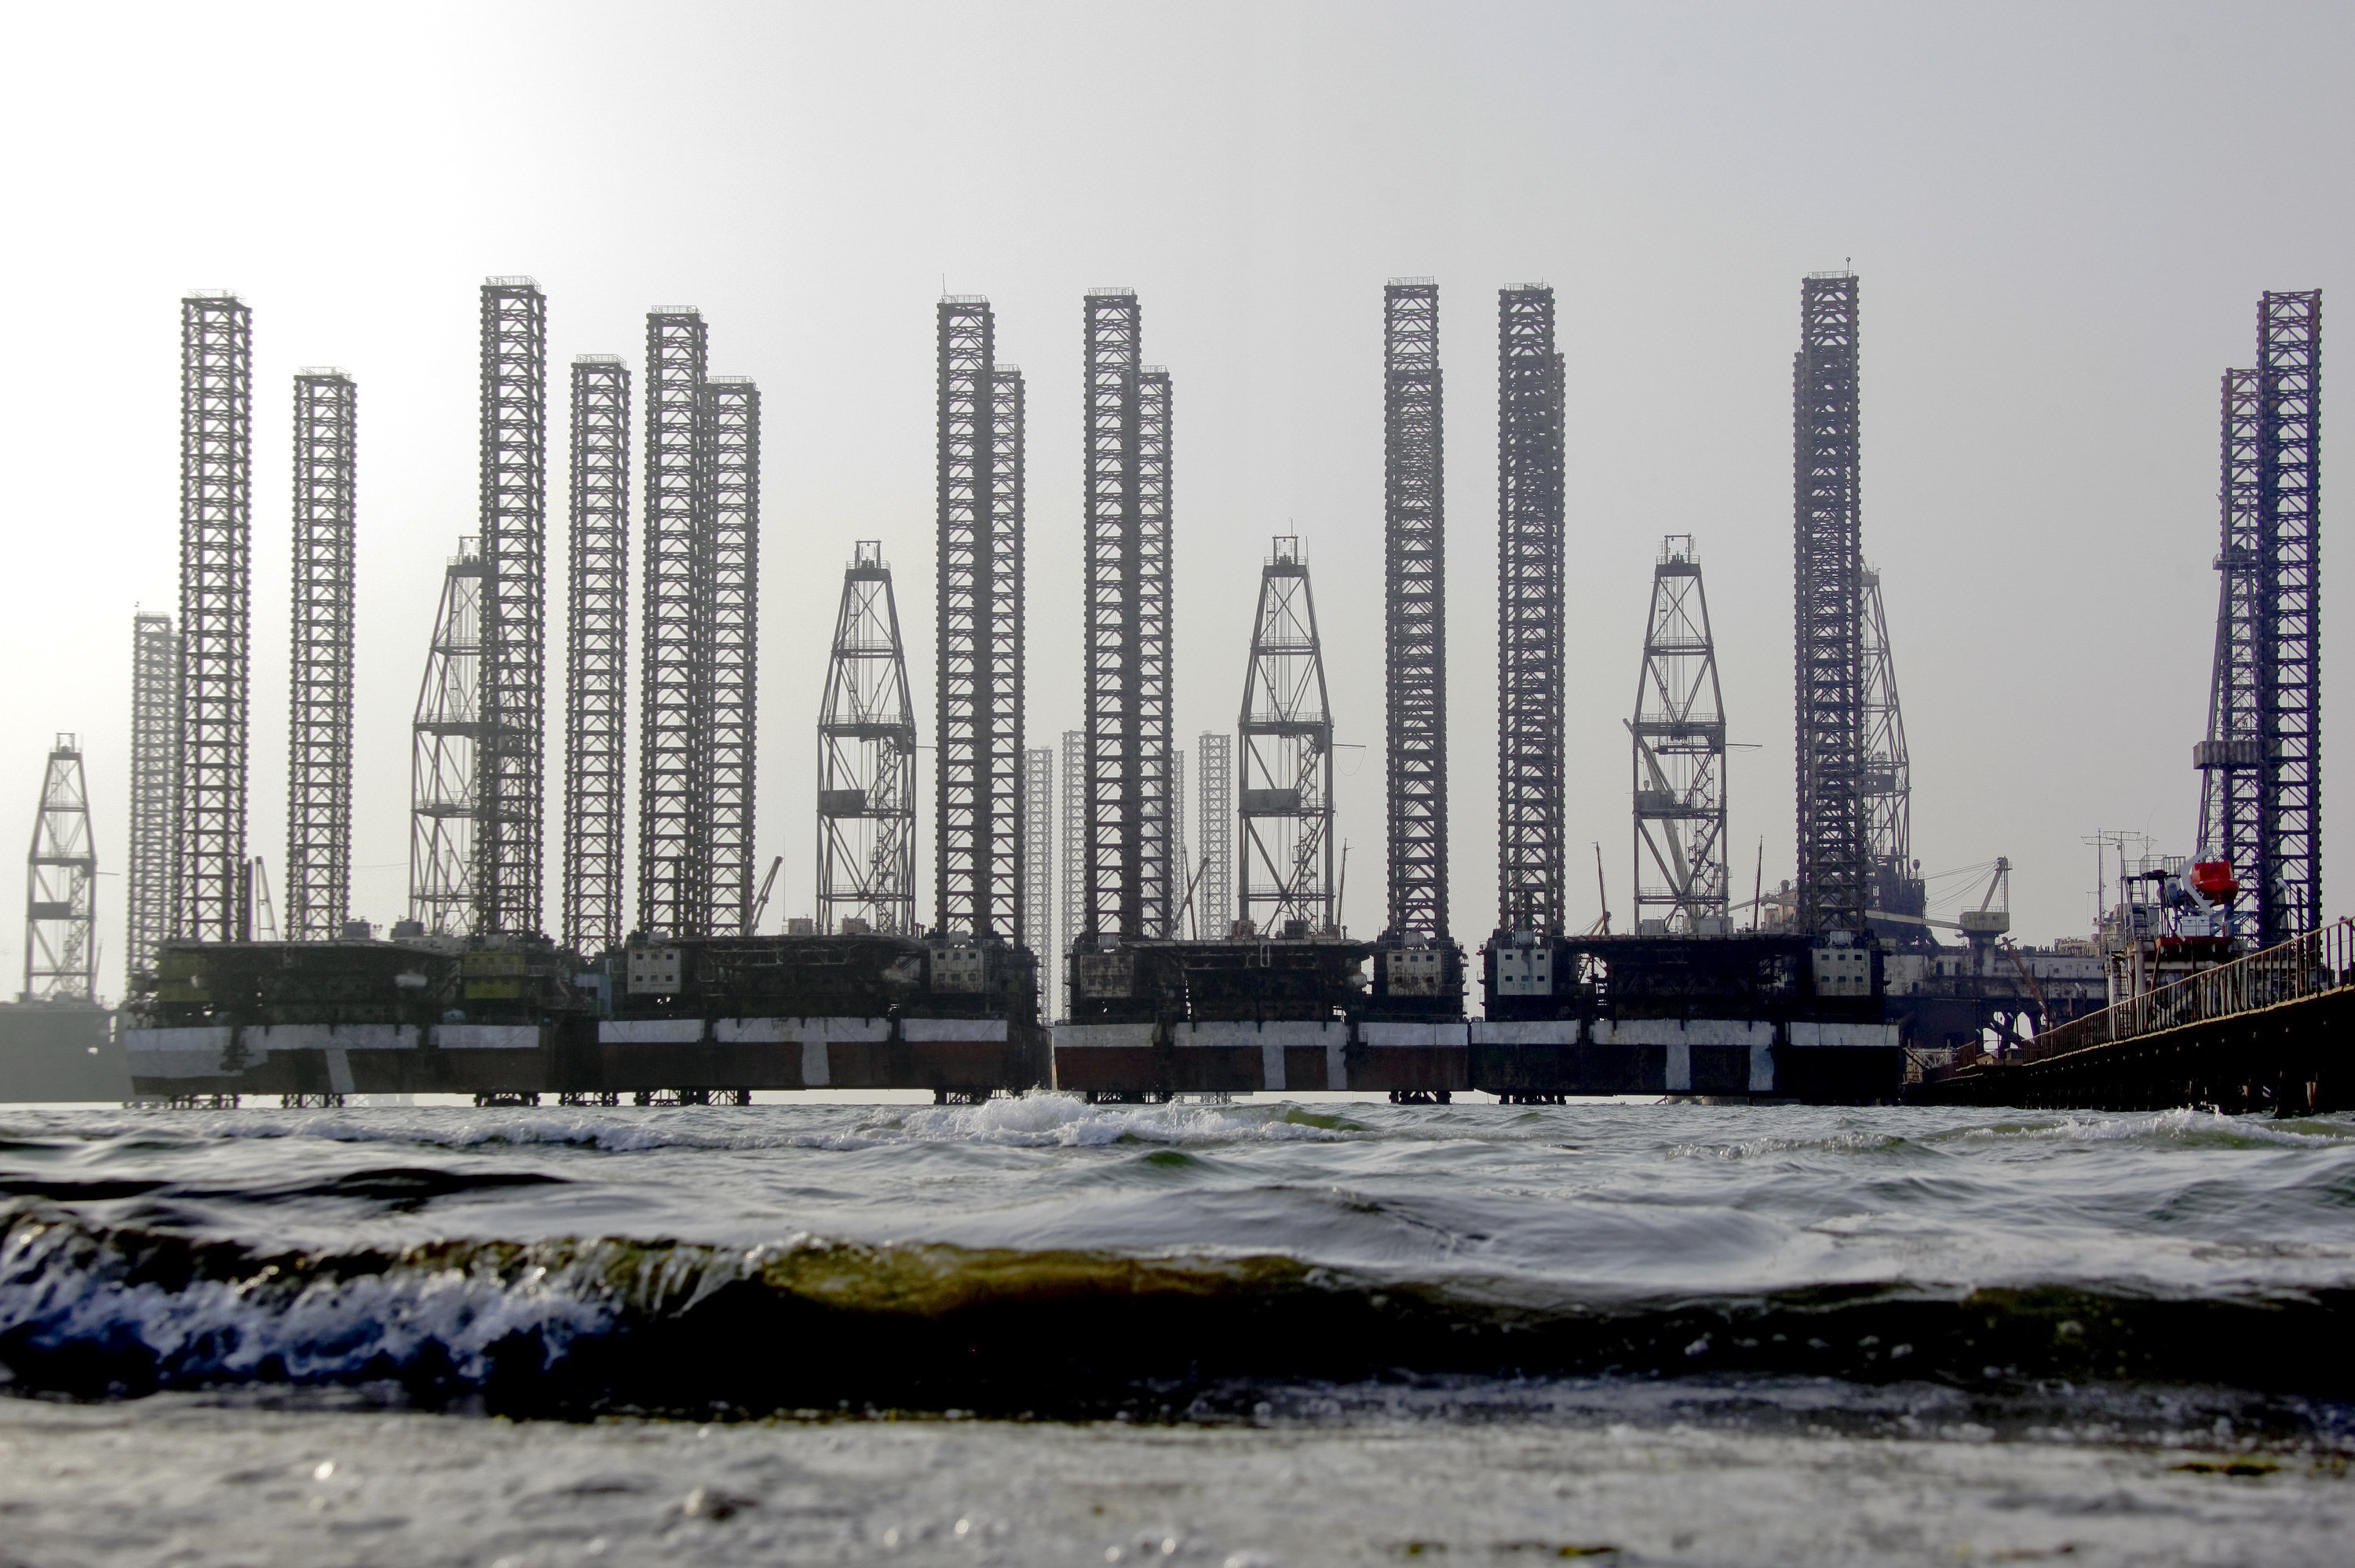 Oil platforms in the Caspian Sea